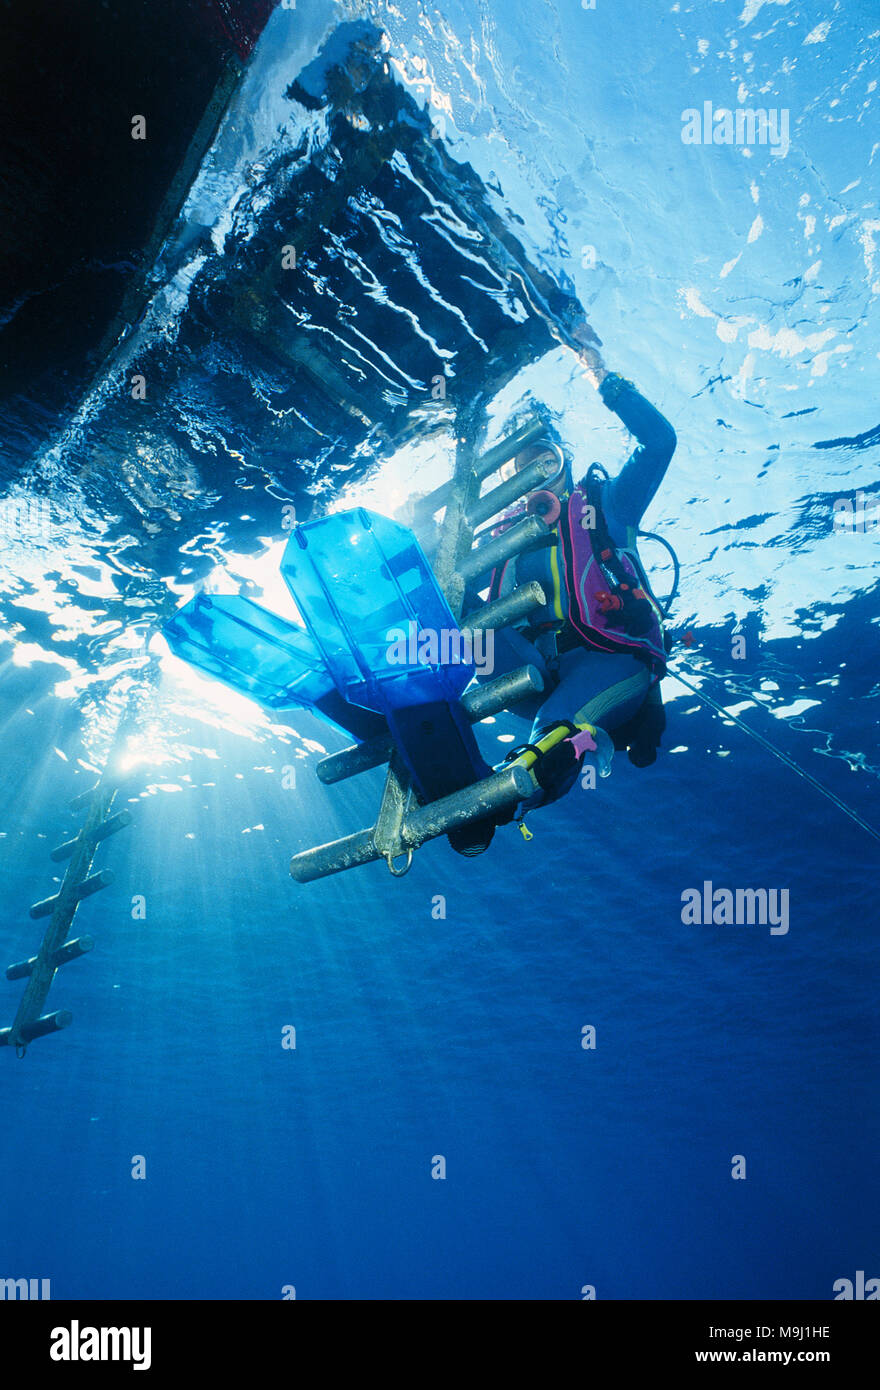 Taucher an der Bootsleiter vom Tauchschiff, Hurghada, Aegypten, Rotes Meer | Scuba diver at boat ledder of diving boat, Hurghada, Egypt, Red Sea - Stock Image